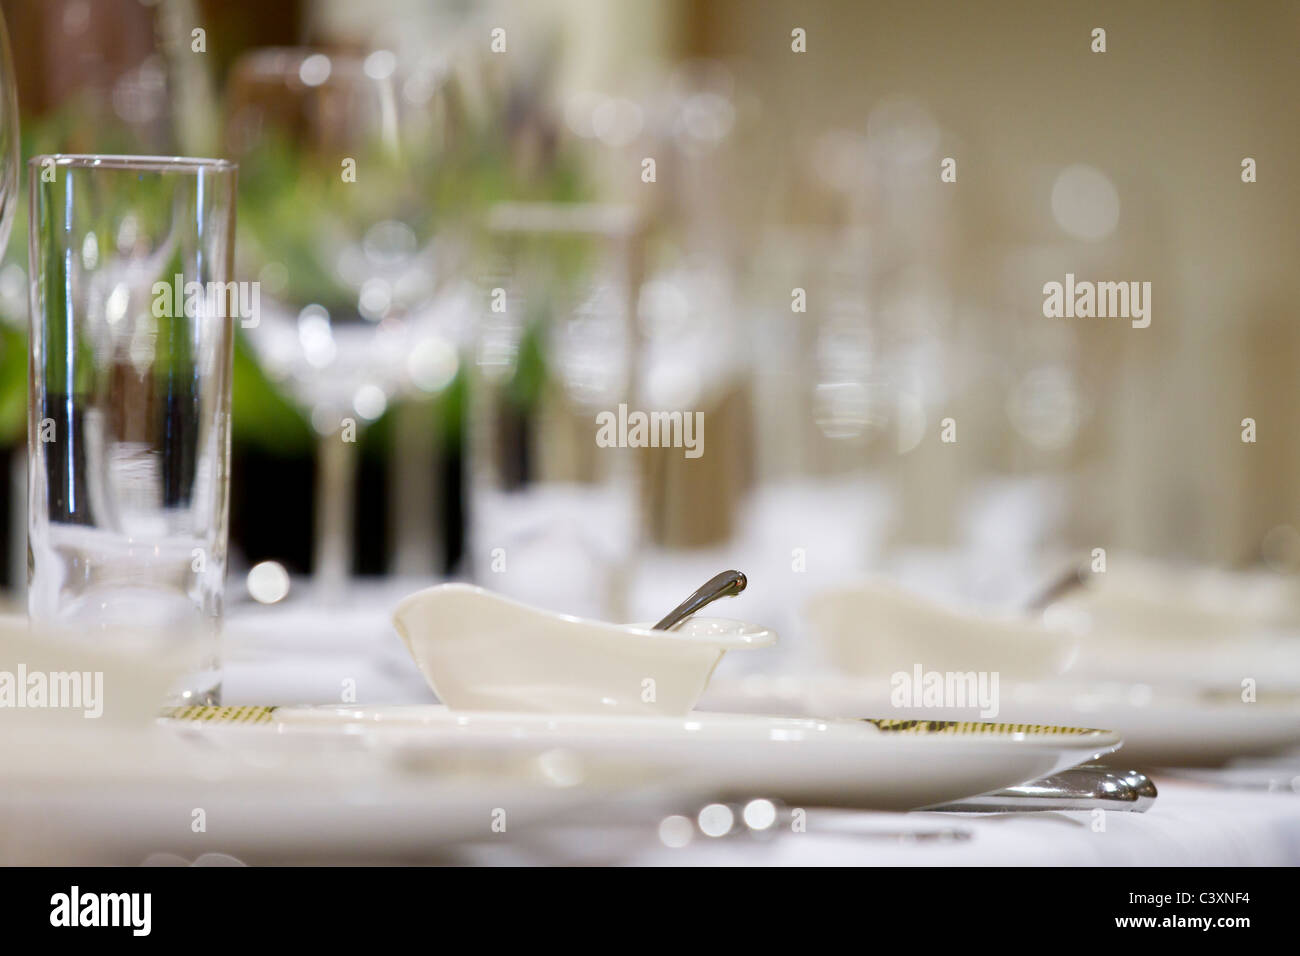 Fine dining restaurant. Wine glasses on a table. - Stock Image